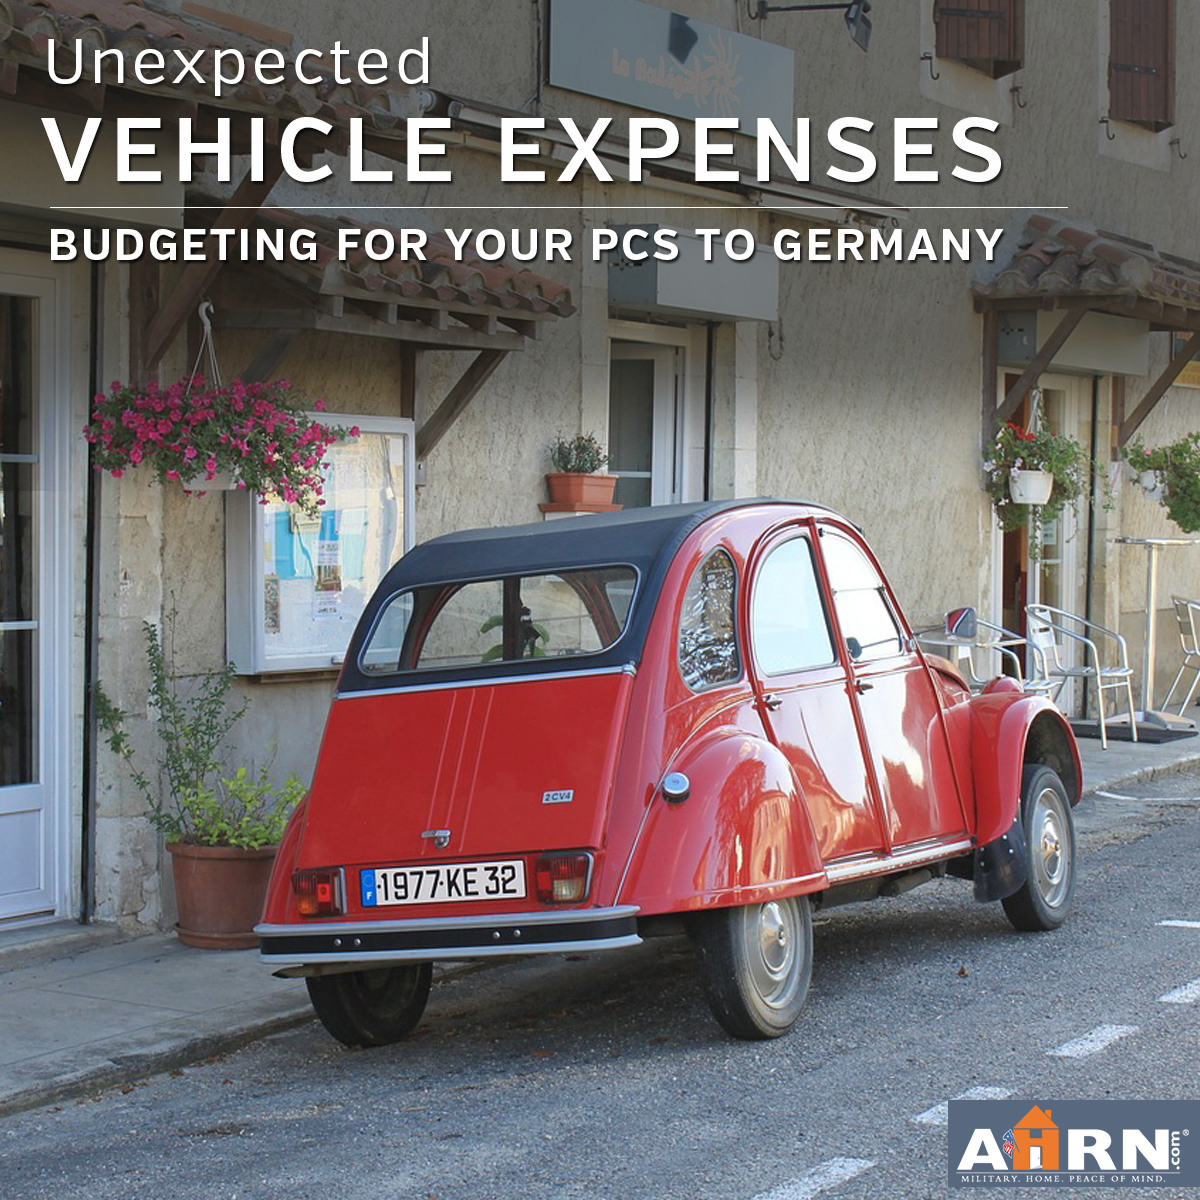 a970469ef7 How budget for unexpected vehicle expenses during your PCS to Germany with  AHRN.com